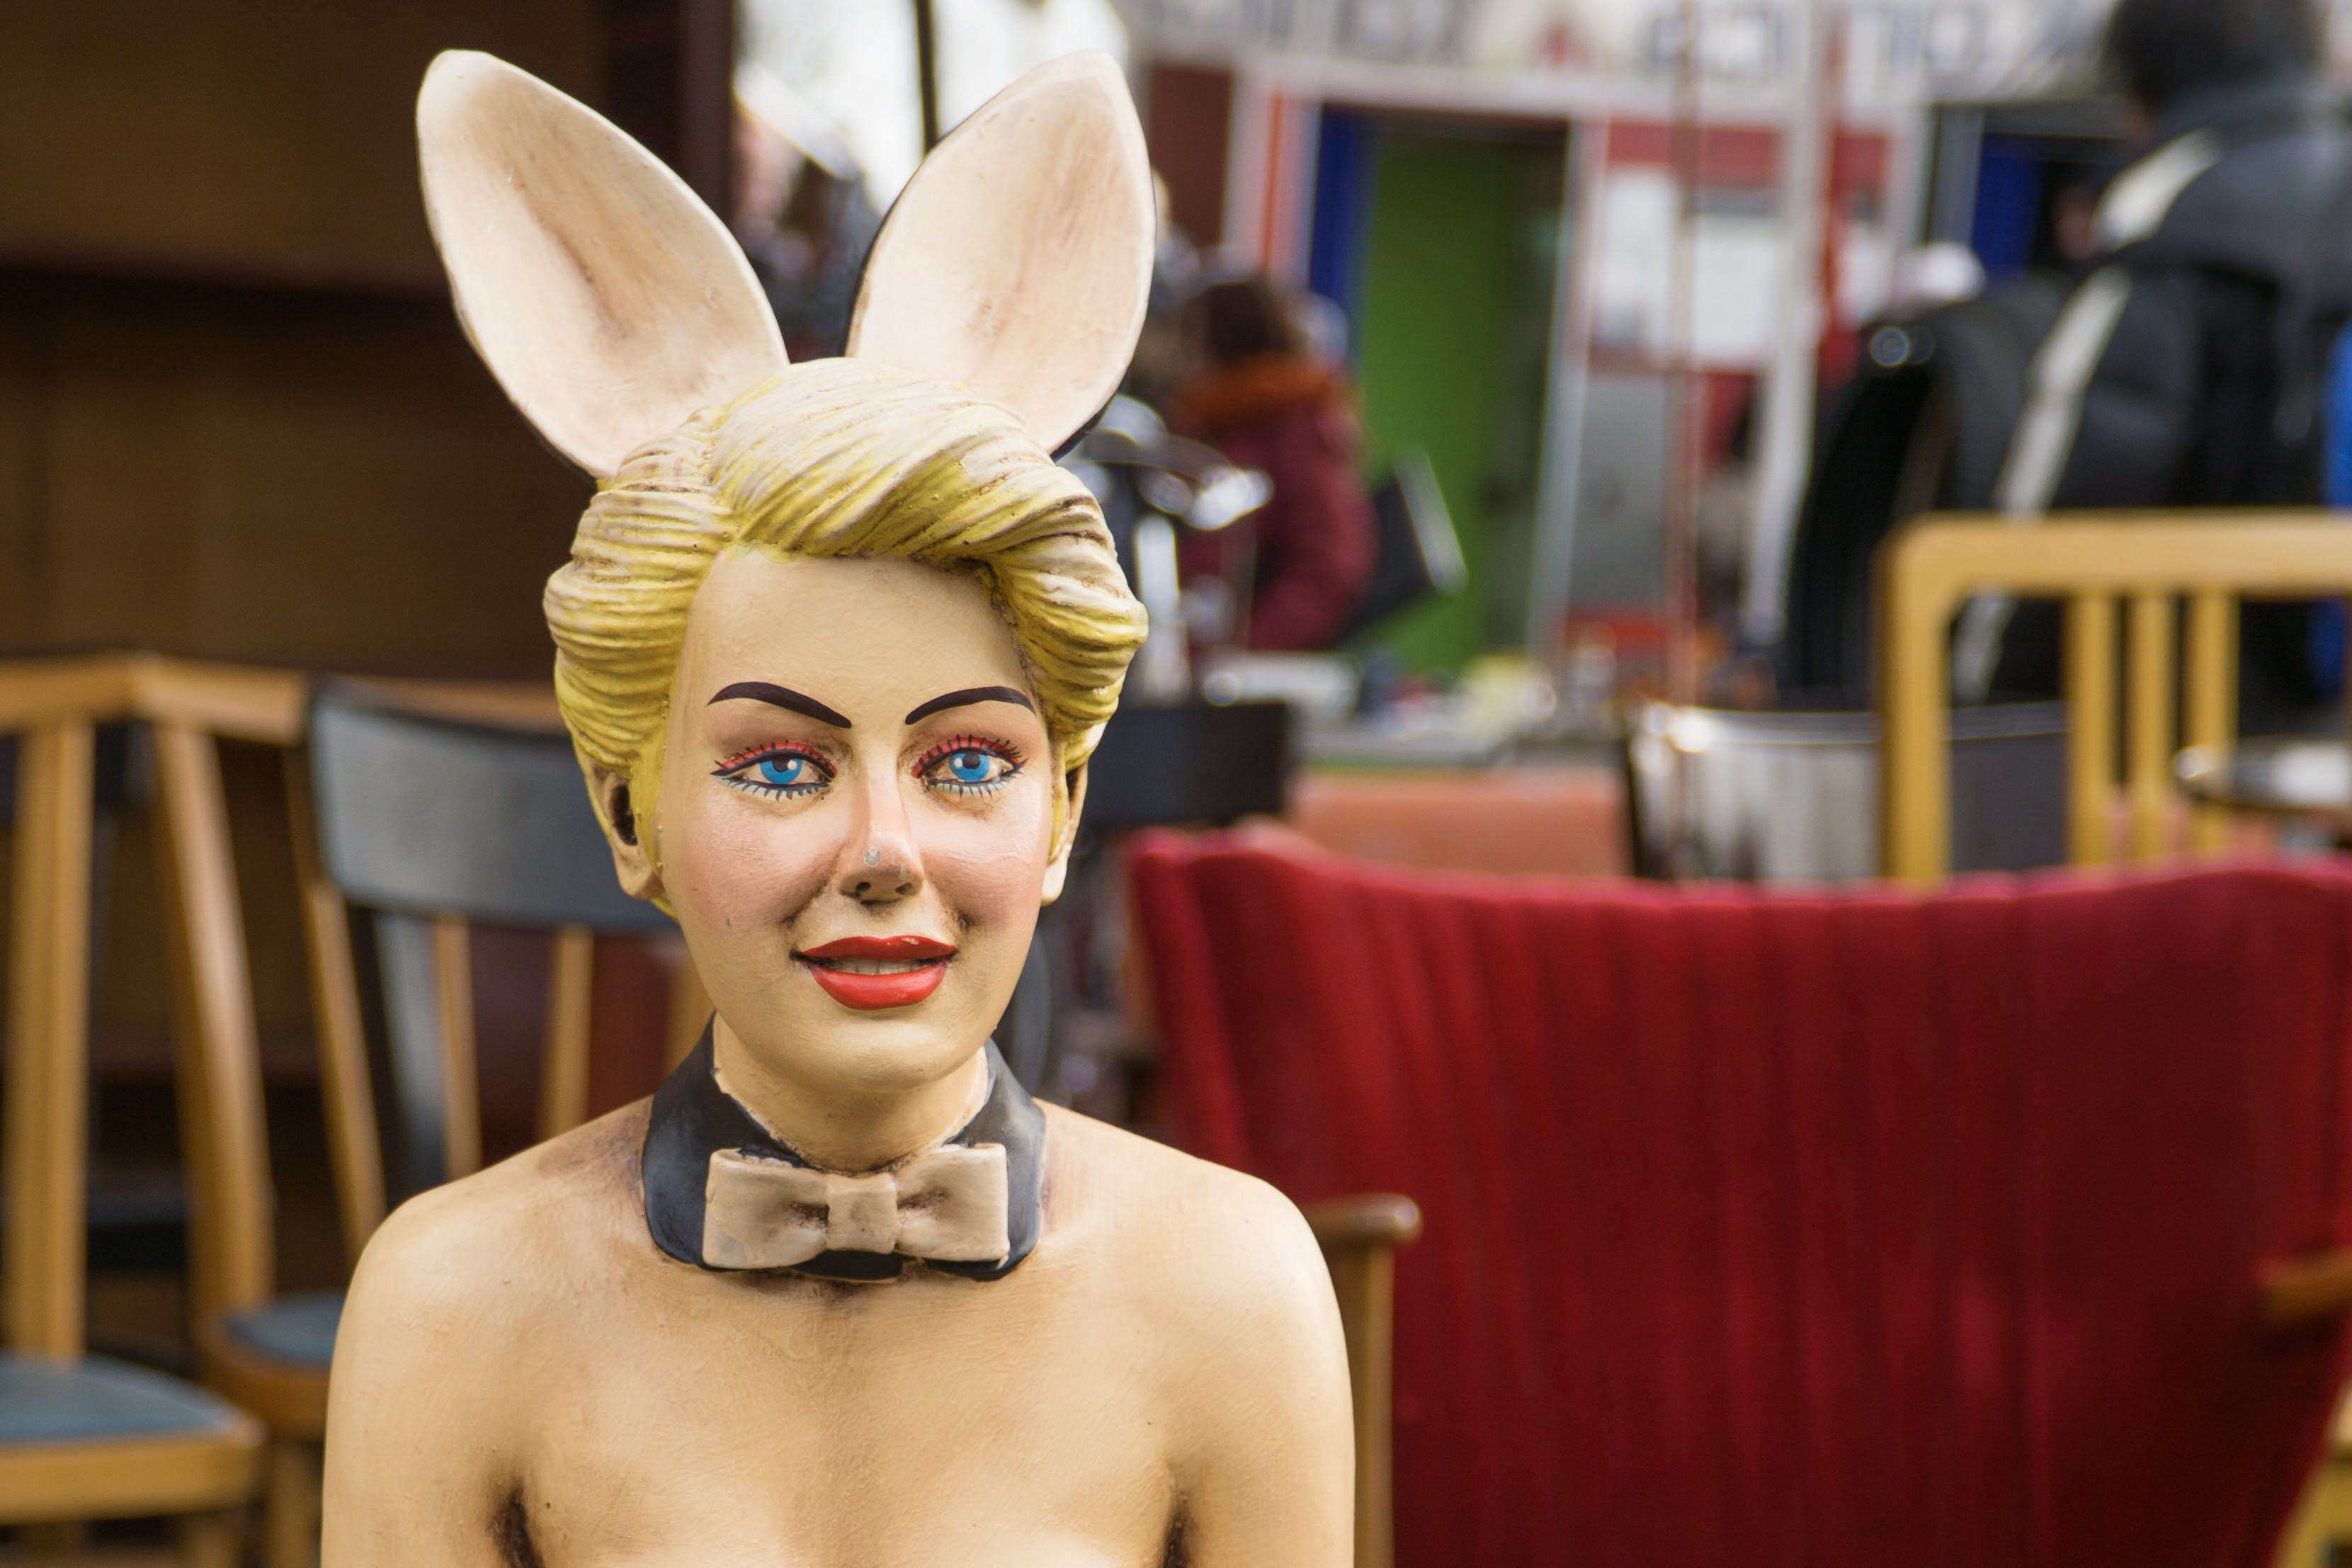 Woman With Bunny Ears Statue